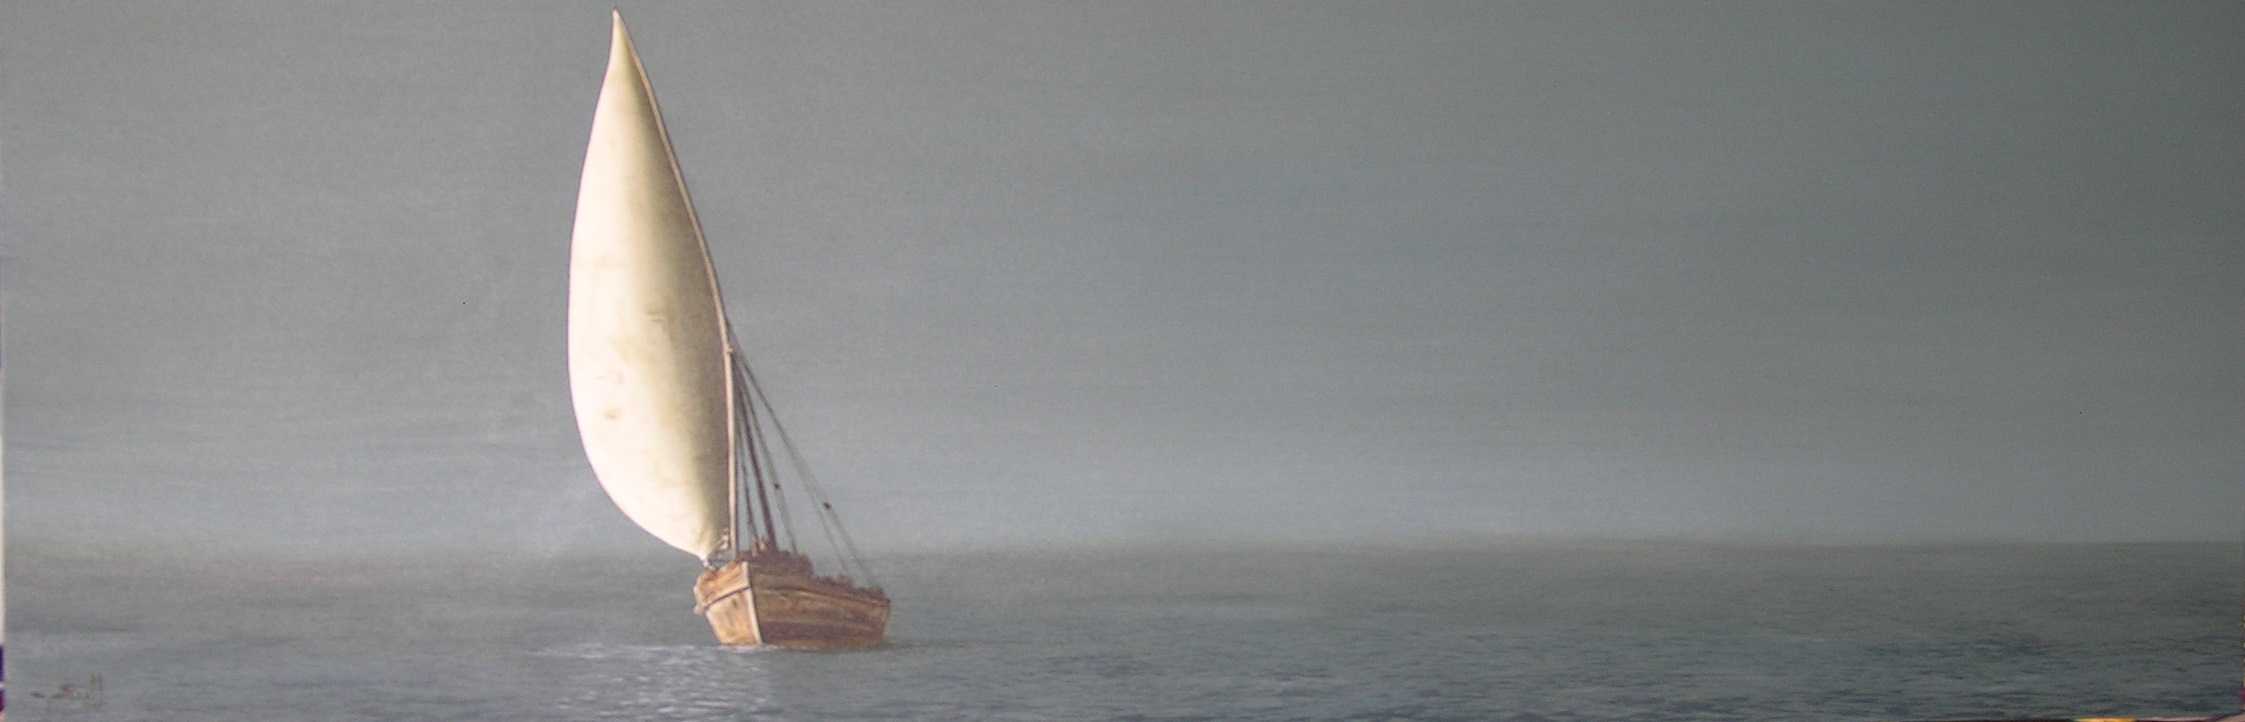 Calm Dhow- oil on canvas - 50cm x 1.7m